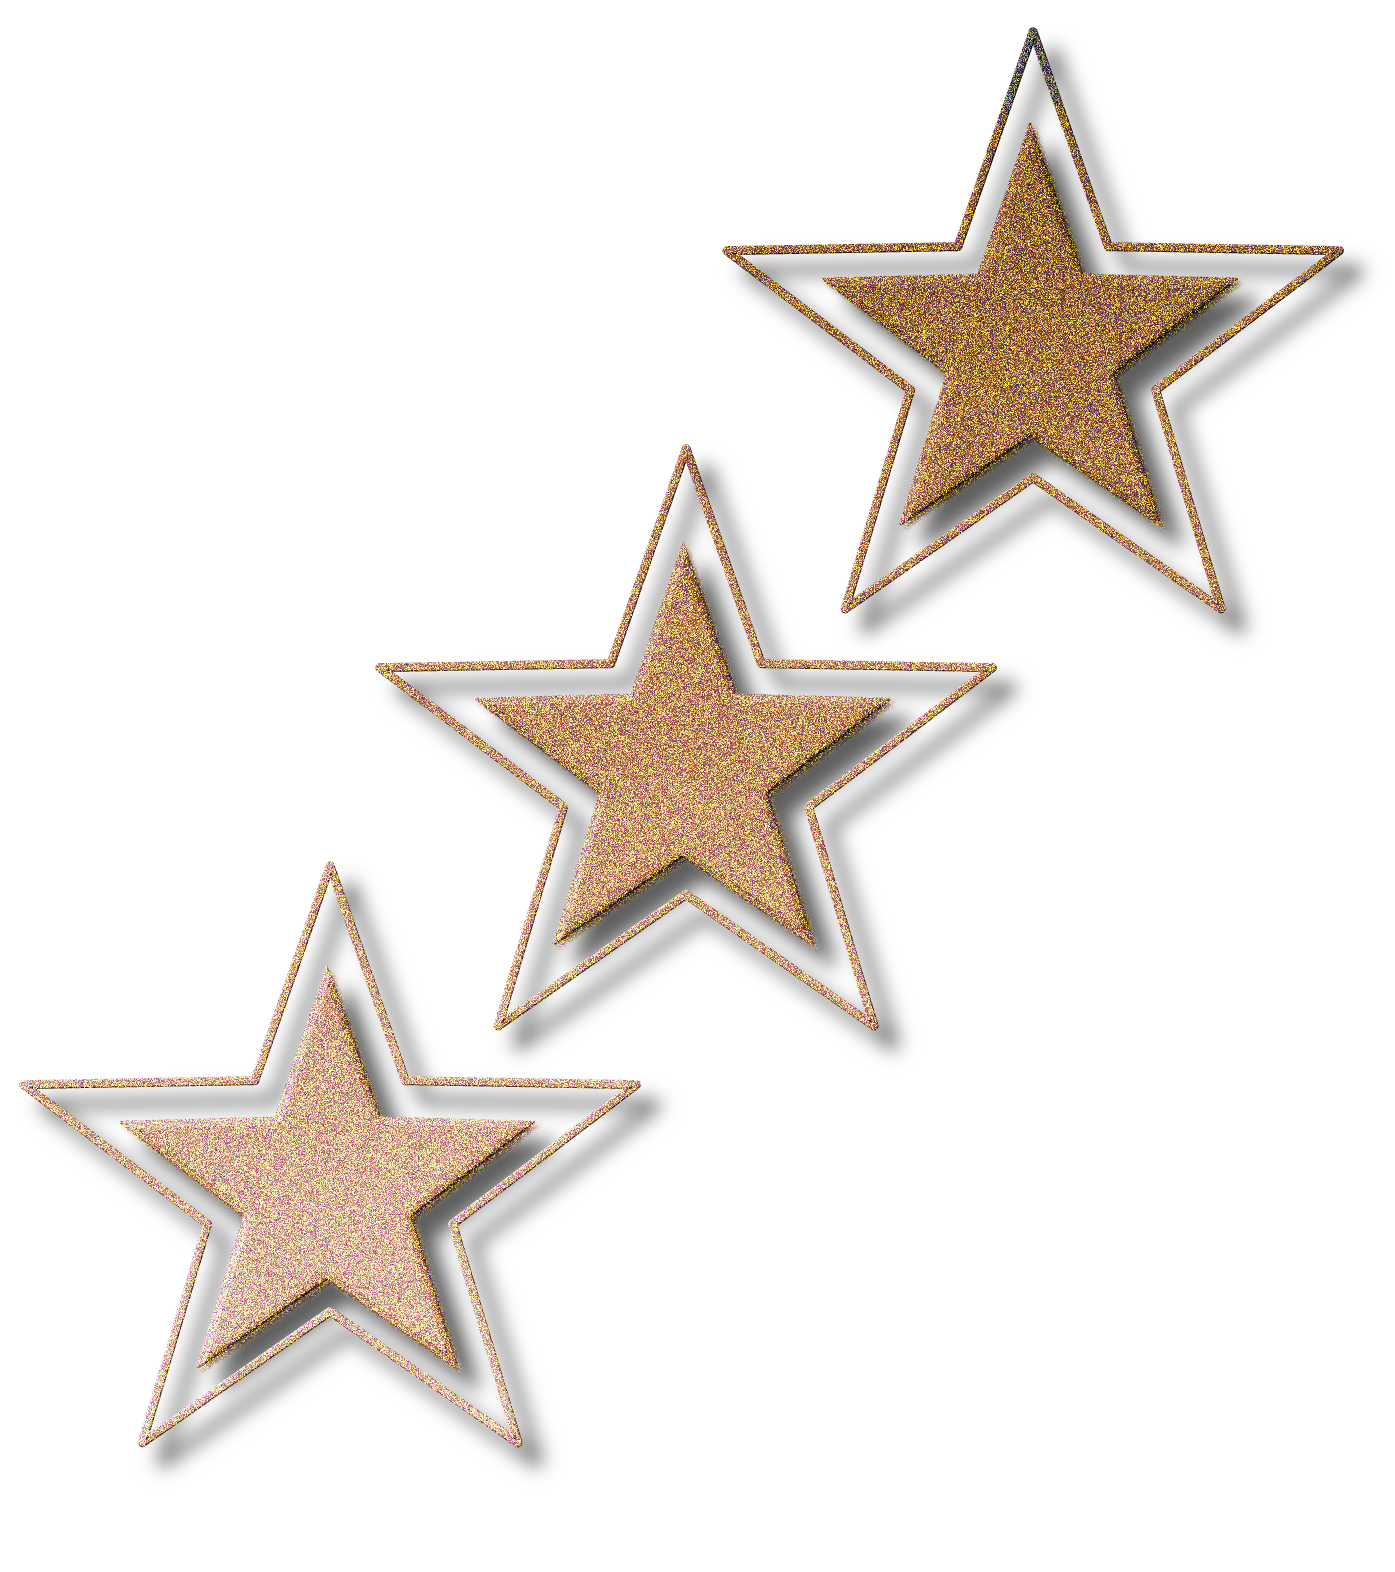 Clipart stars dust. Star pinterest